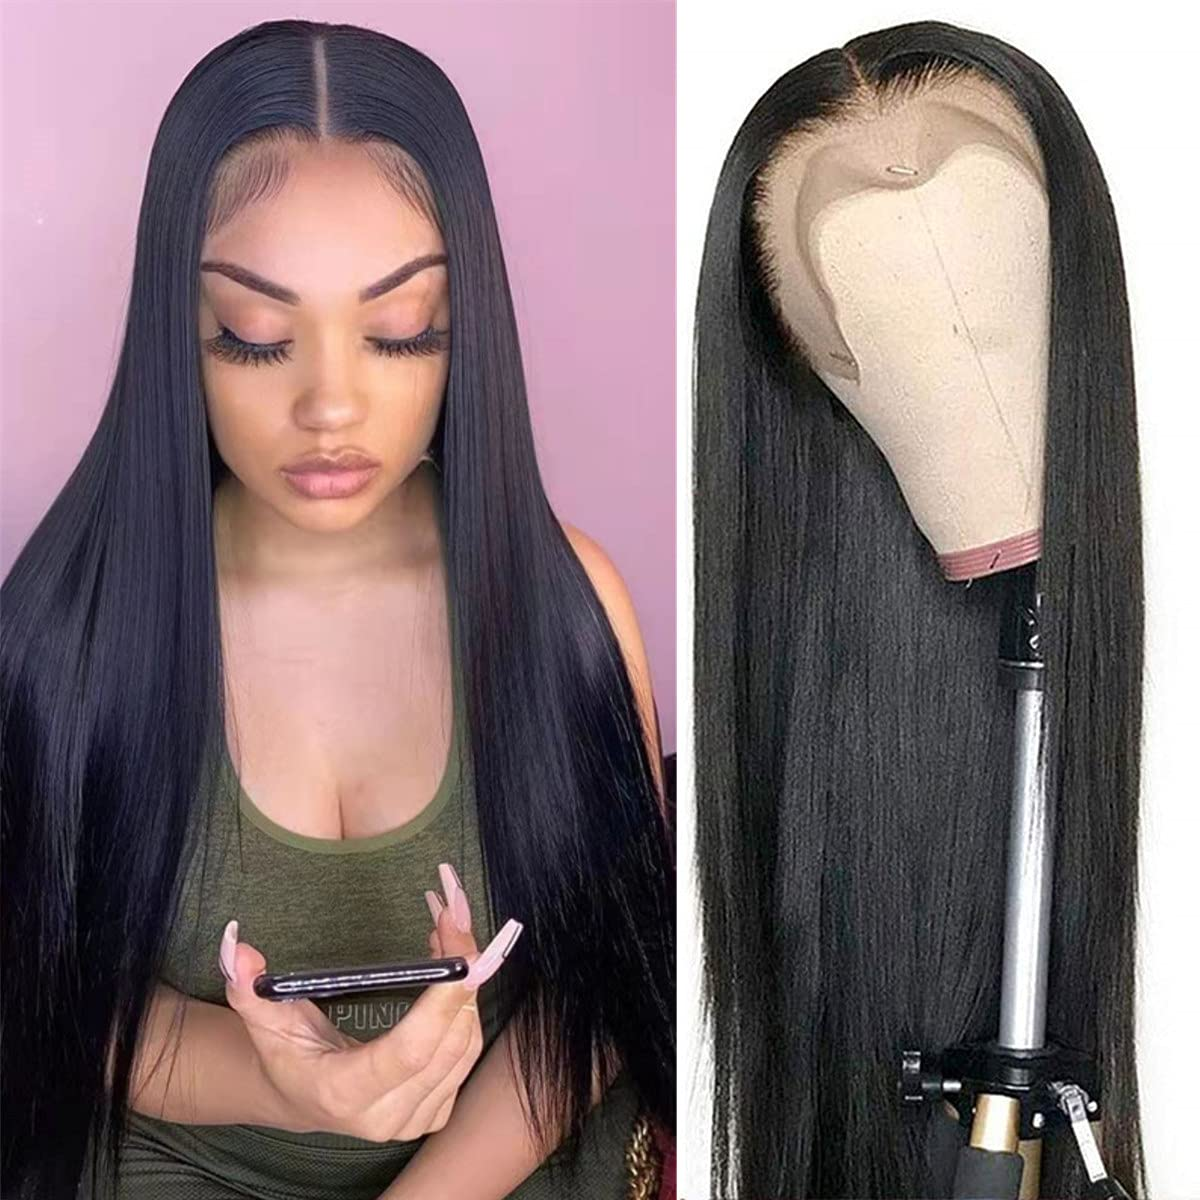 Straight Lace Front Wig Human Hair For Women 13x4 Lace Frontal Wig Pre Plucked Brazilian Straight Lace Closure Wig 4X4 Lace Wig